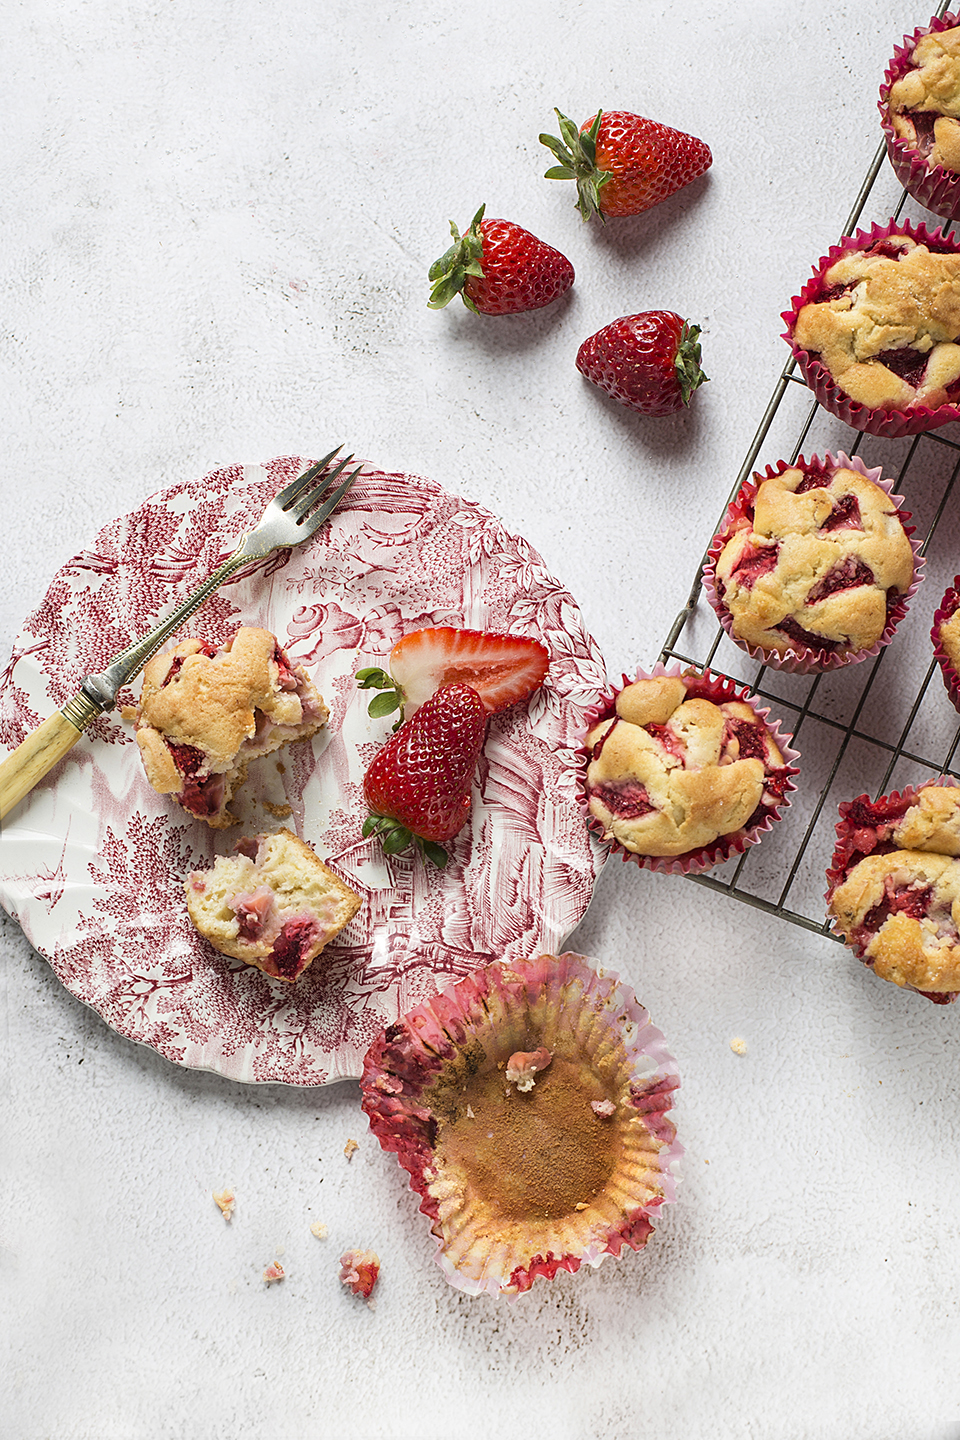 Food Photographer UK Strawberry cake, strawberry muffins Commercial Photographer Liverpool, Food Photographer Liverpool, Manchester, Leeds, Preston, Blackburn,